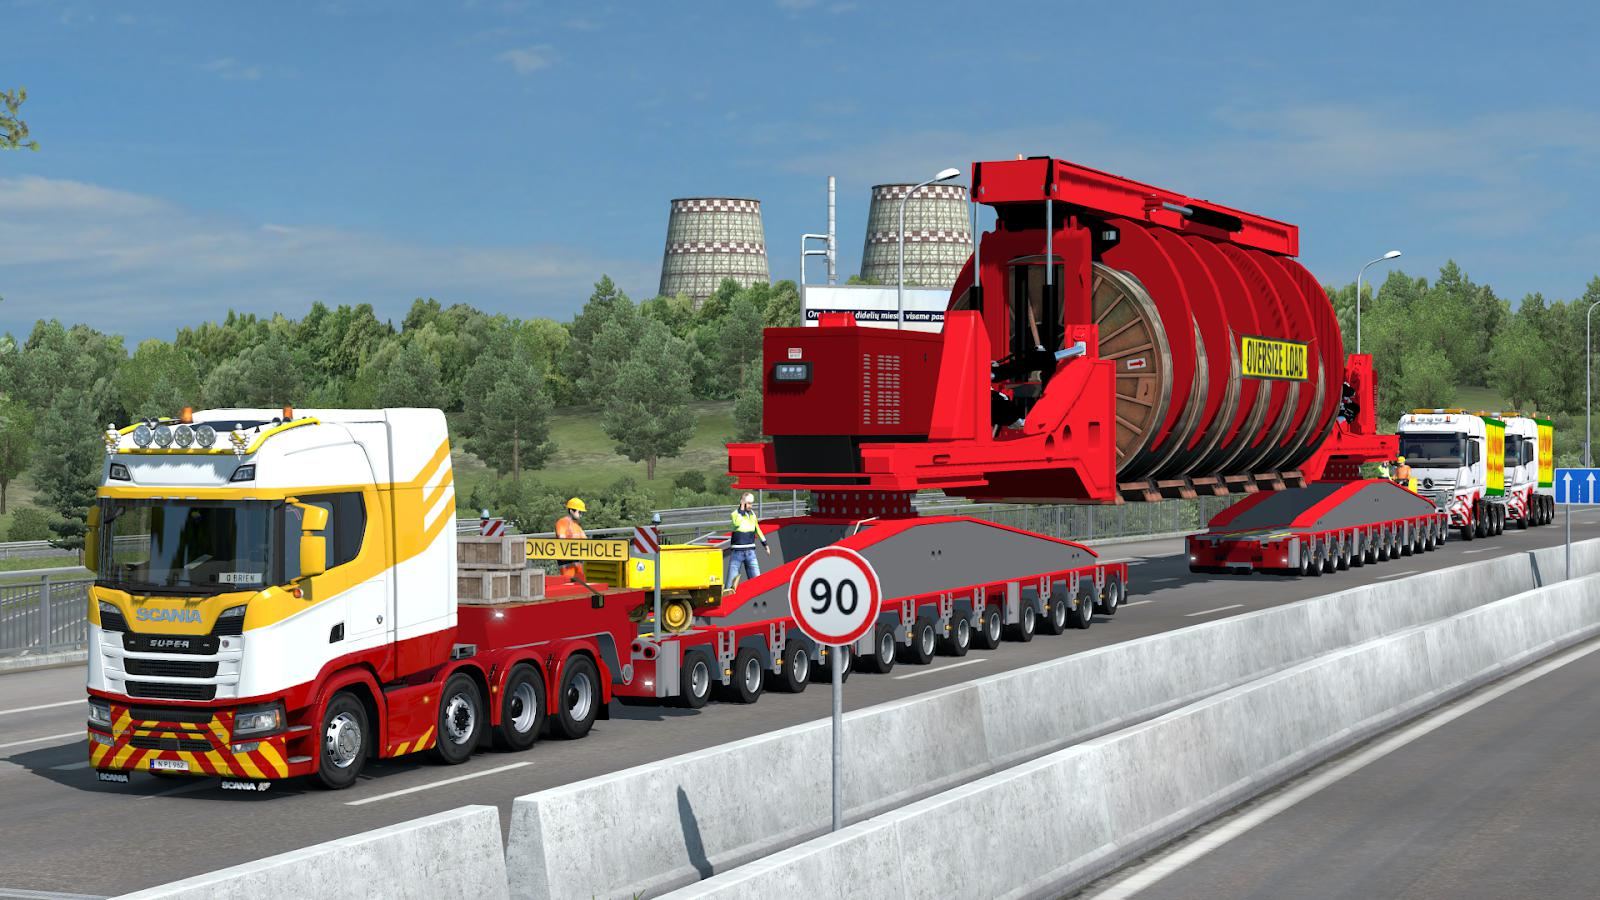 ETS2 - 260 Tons Industrial Cable Reel Transport with Support Trucks (1.38.x)